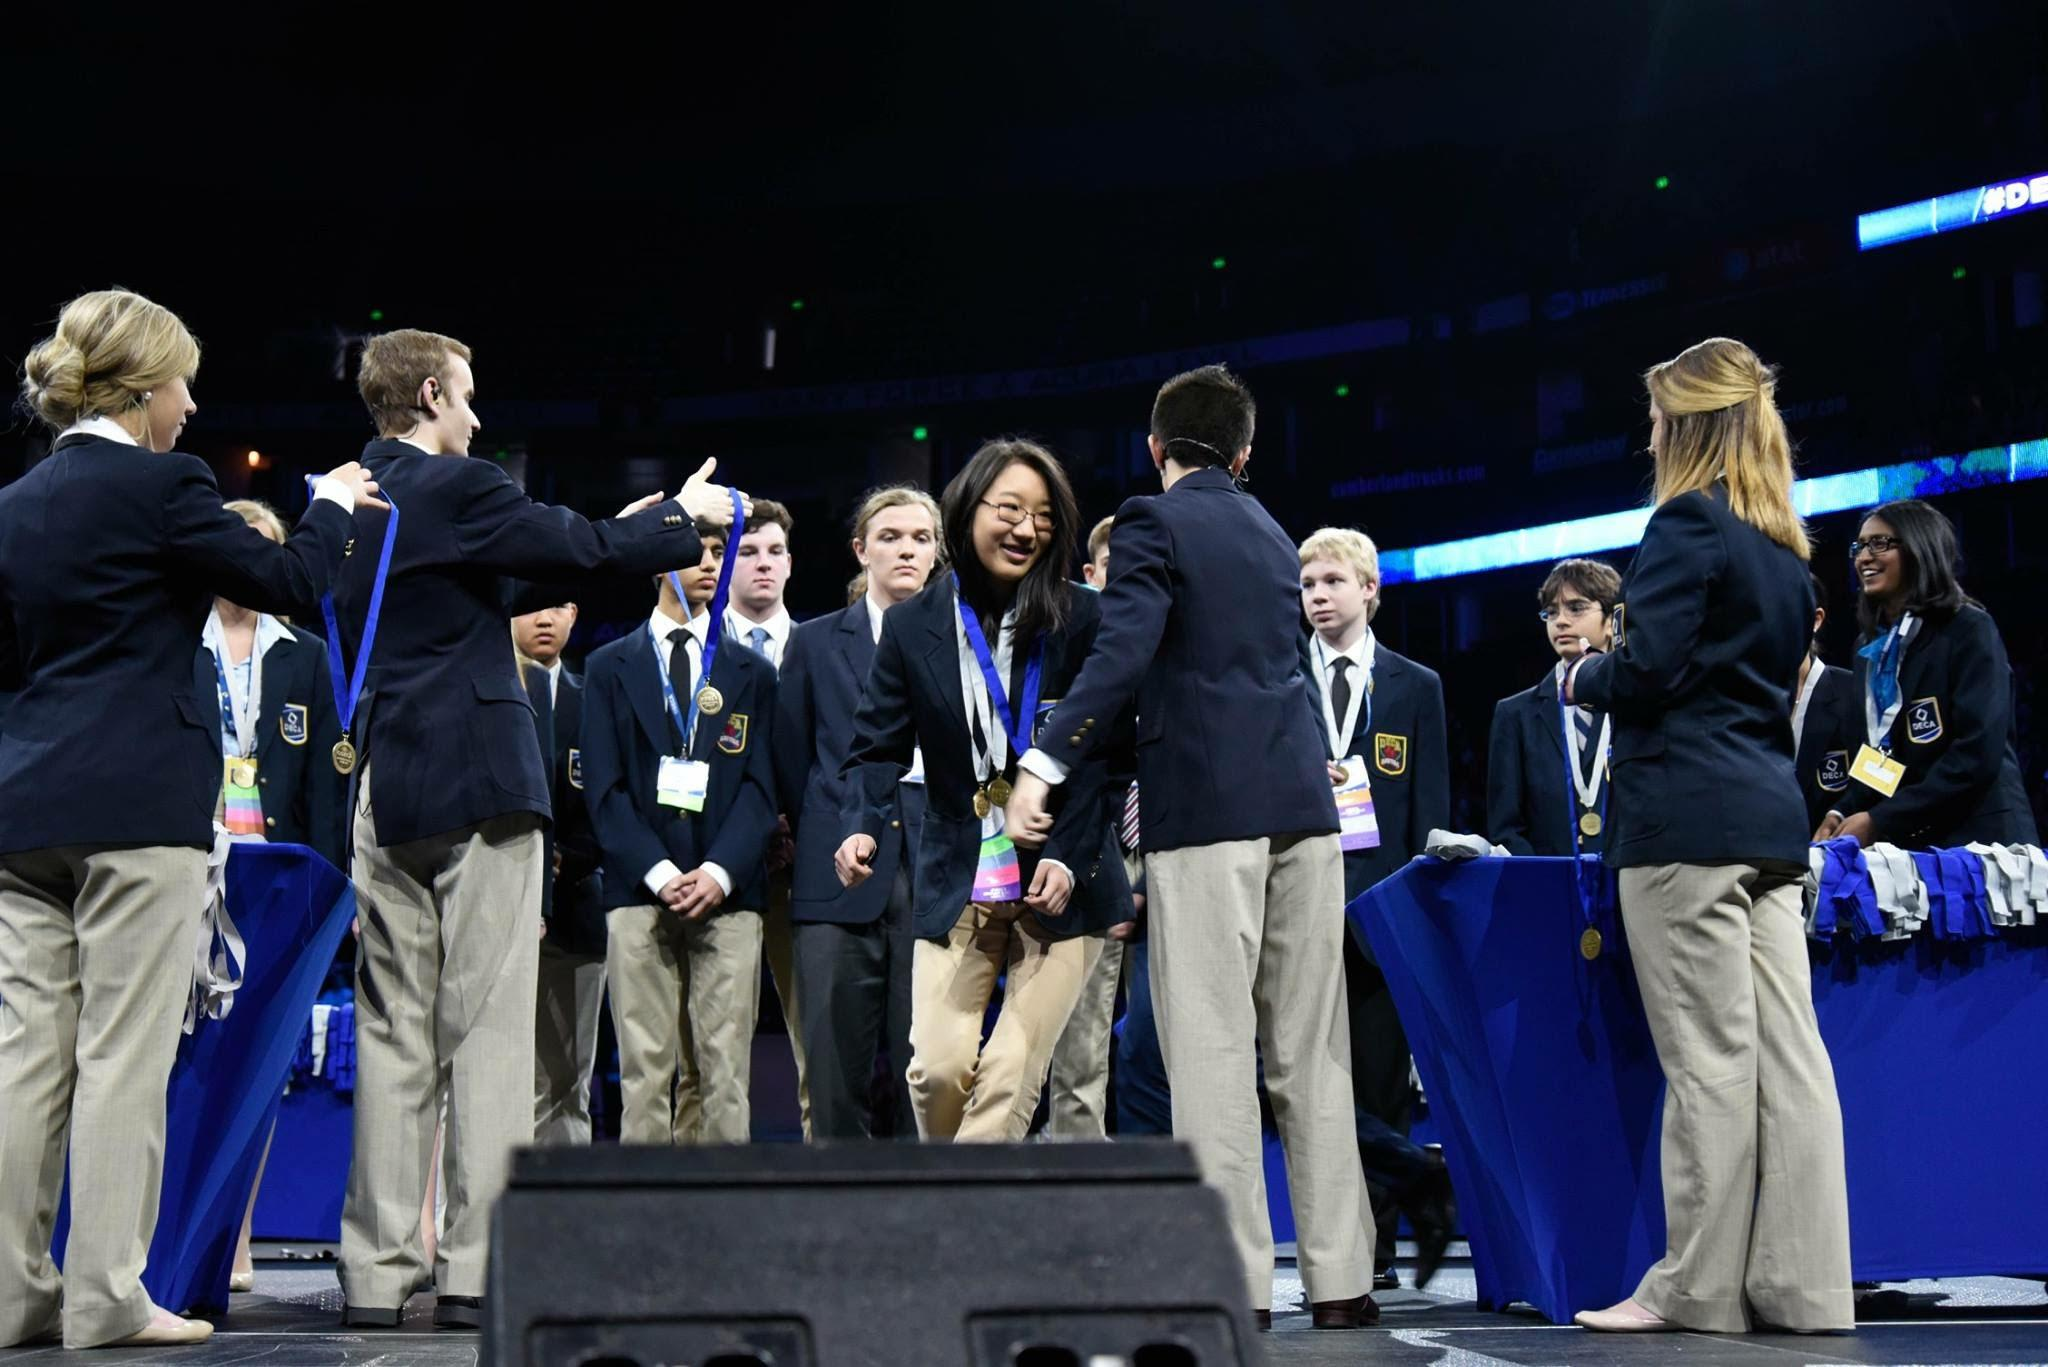 Enya Lu (9) steps forward to receive her medal after being called forward as an overall finalist in Principles of Finance. Later that evening, Enya earned first place, making Harker DECA history.